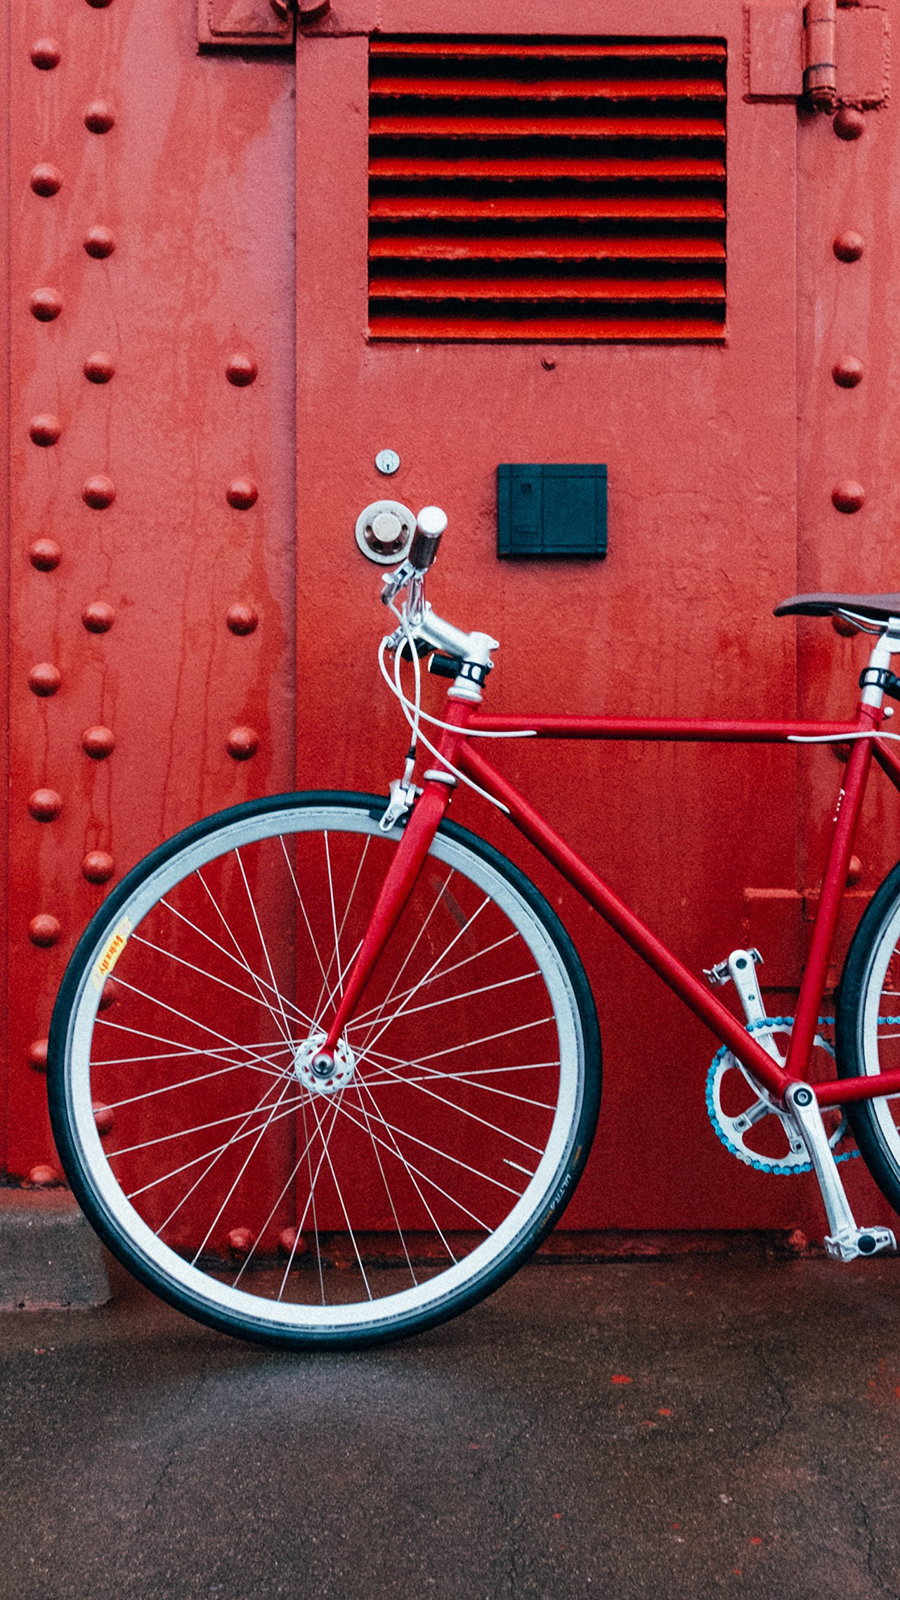 Bicycle Red Wall Wallpapers Free Download